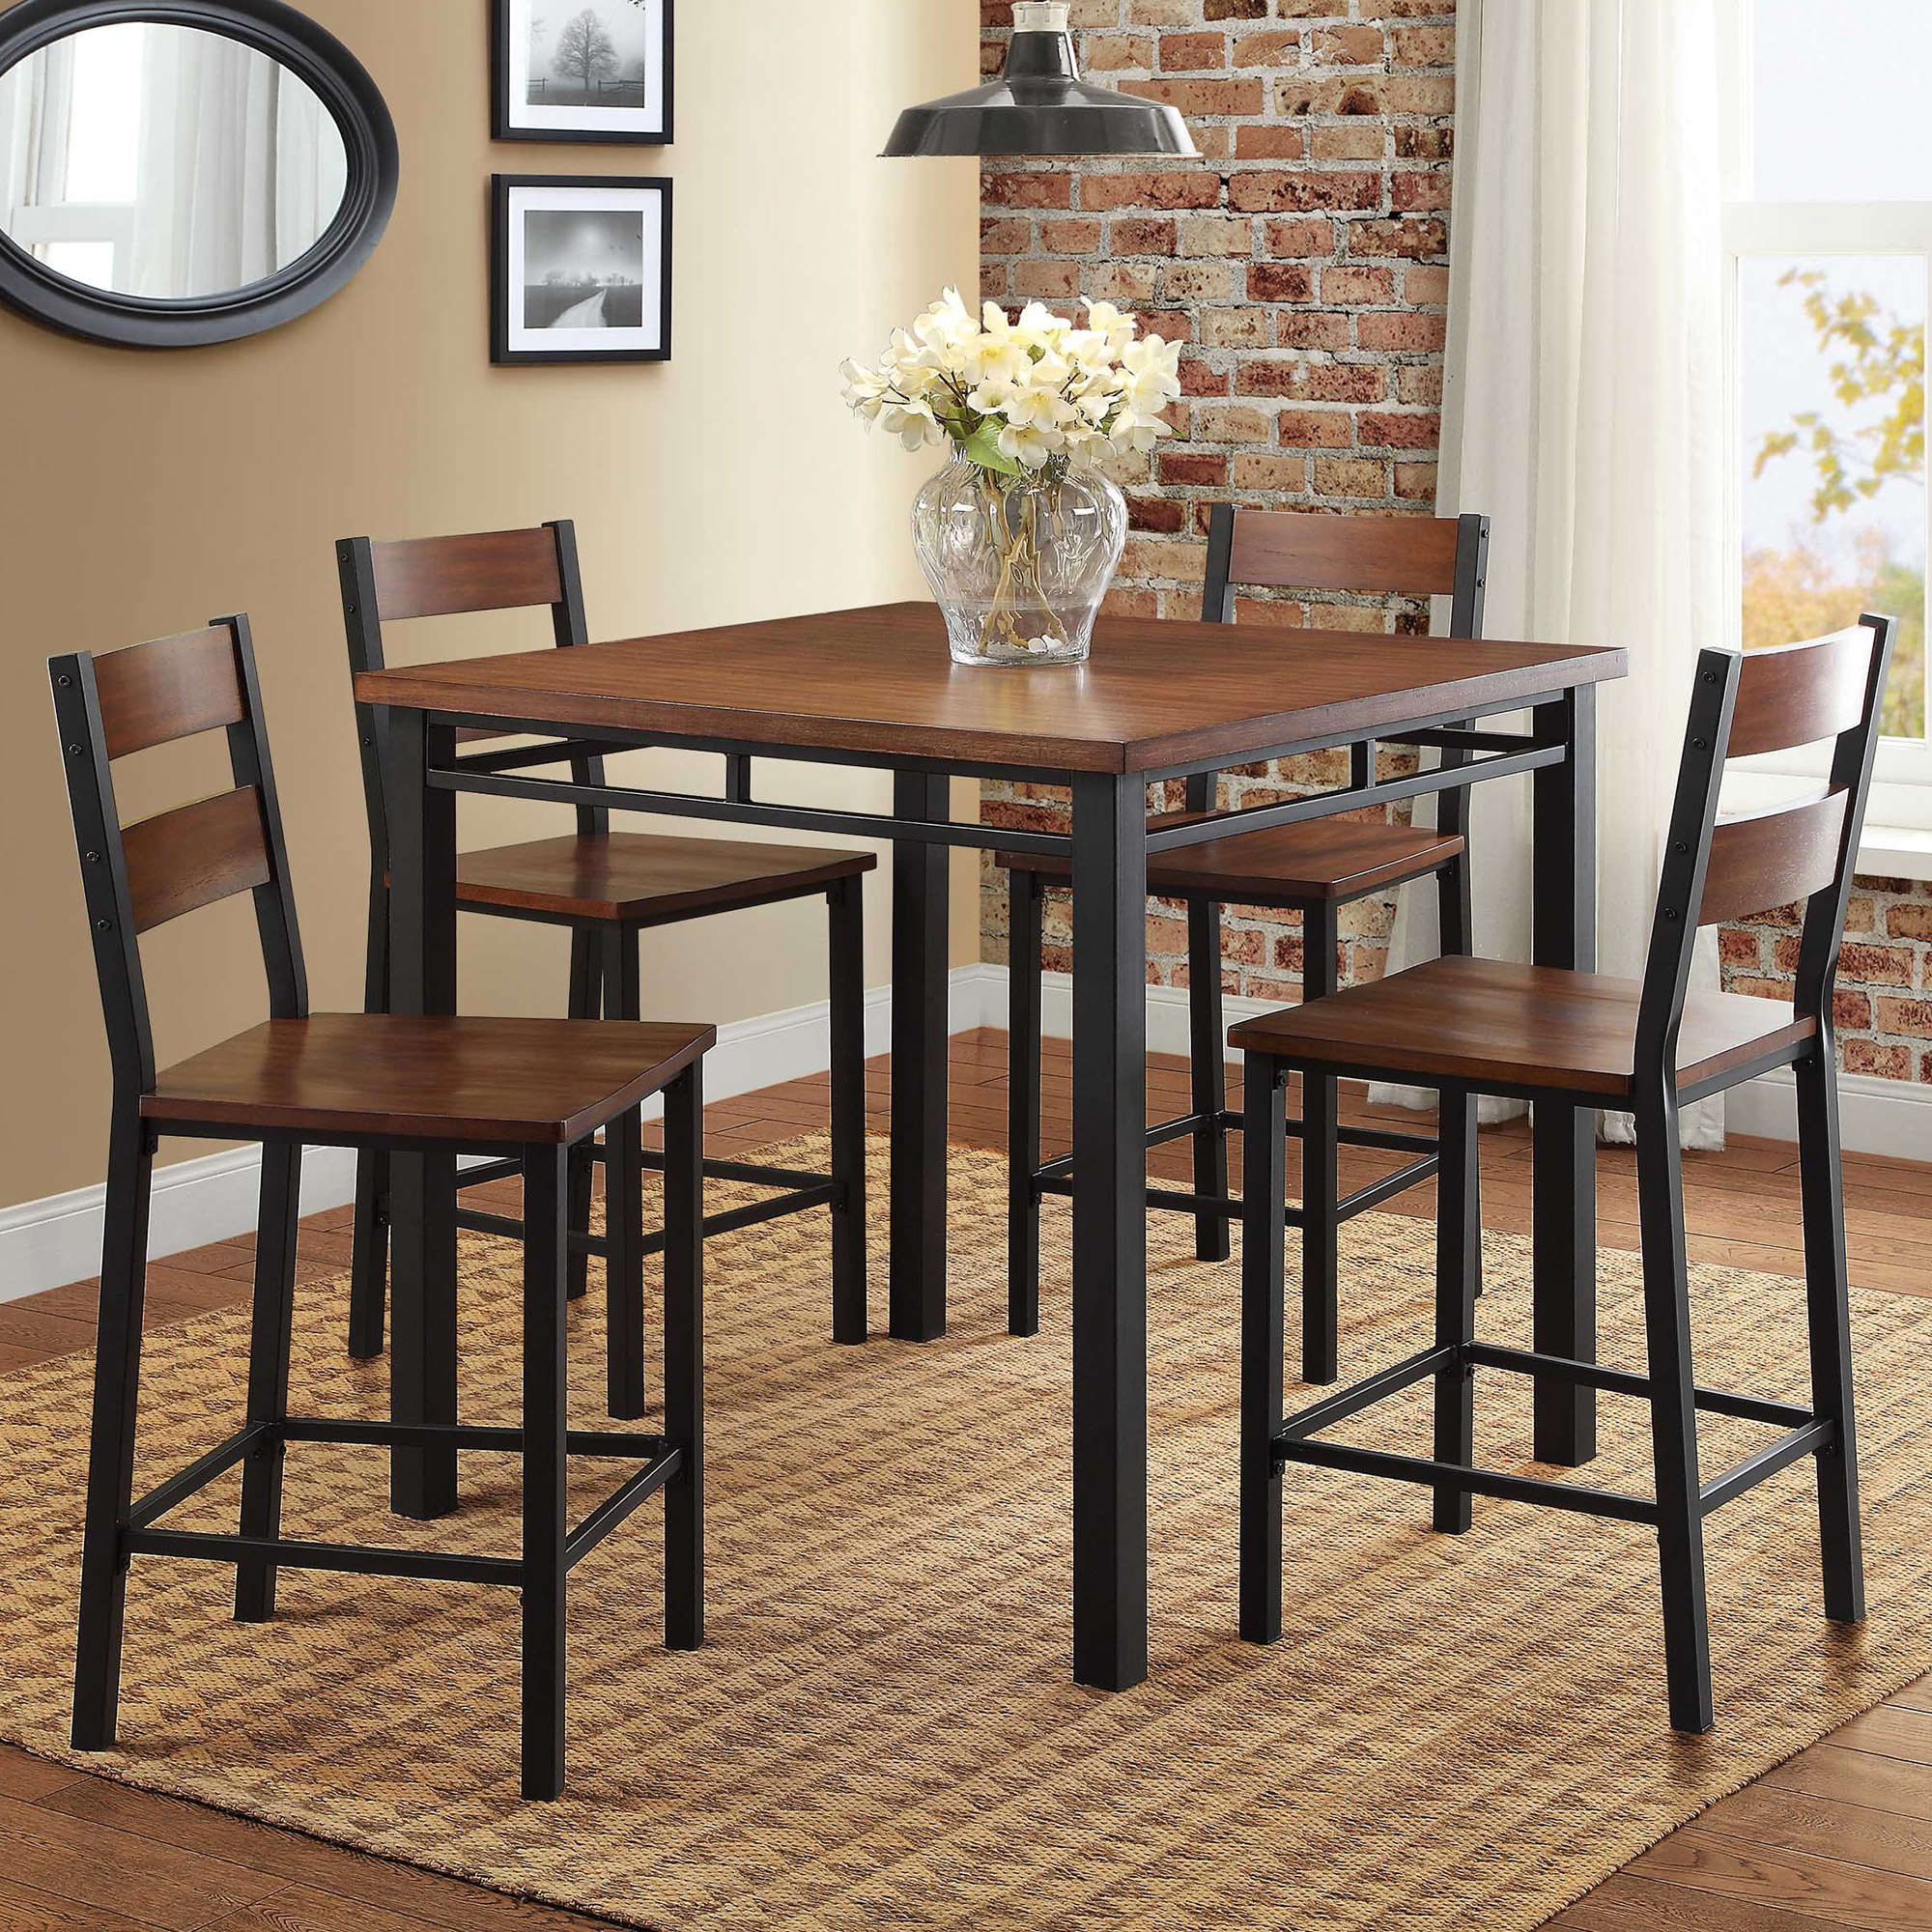 Inspiration about Recent 5 Piece Breakfast Nook Dining Sets Regarding Rustic Dining Table Set High Top Counter Height Chair Kitchen Nook 5 (#13 of 20)